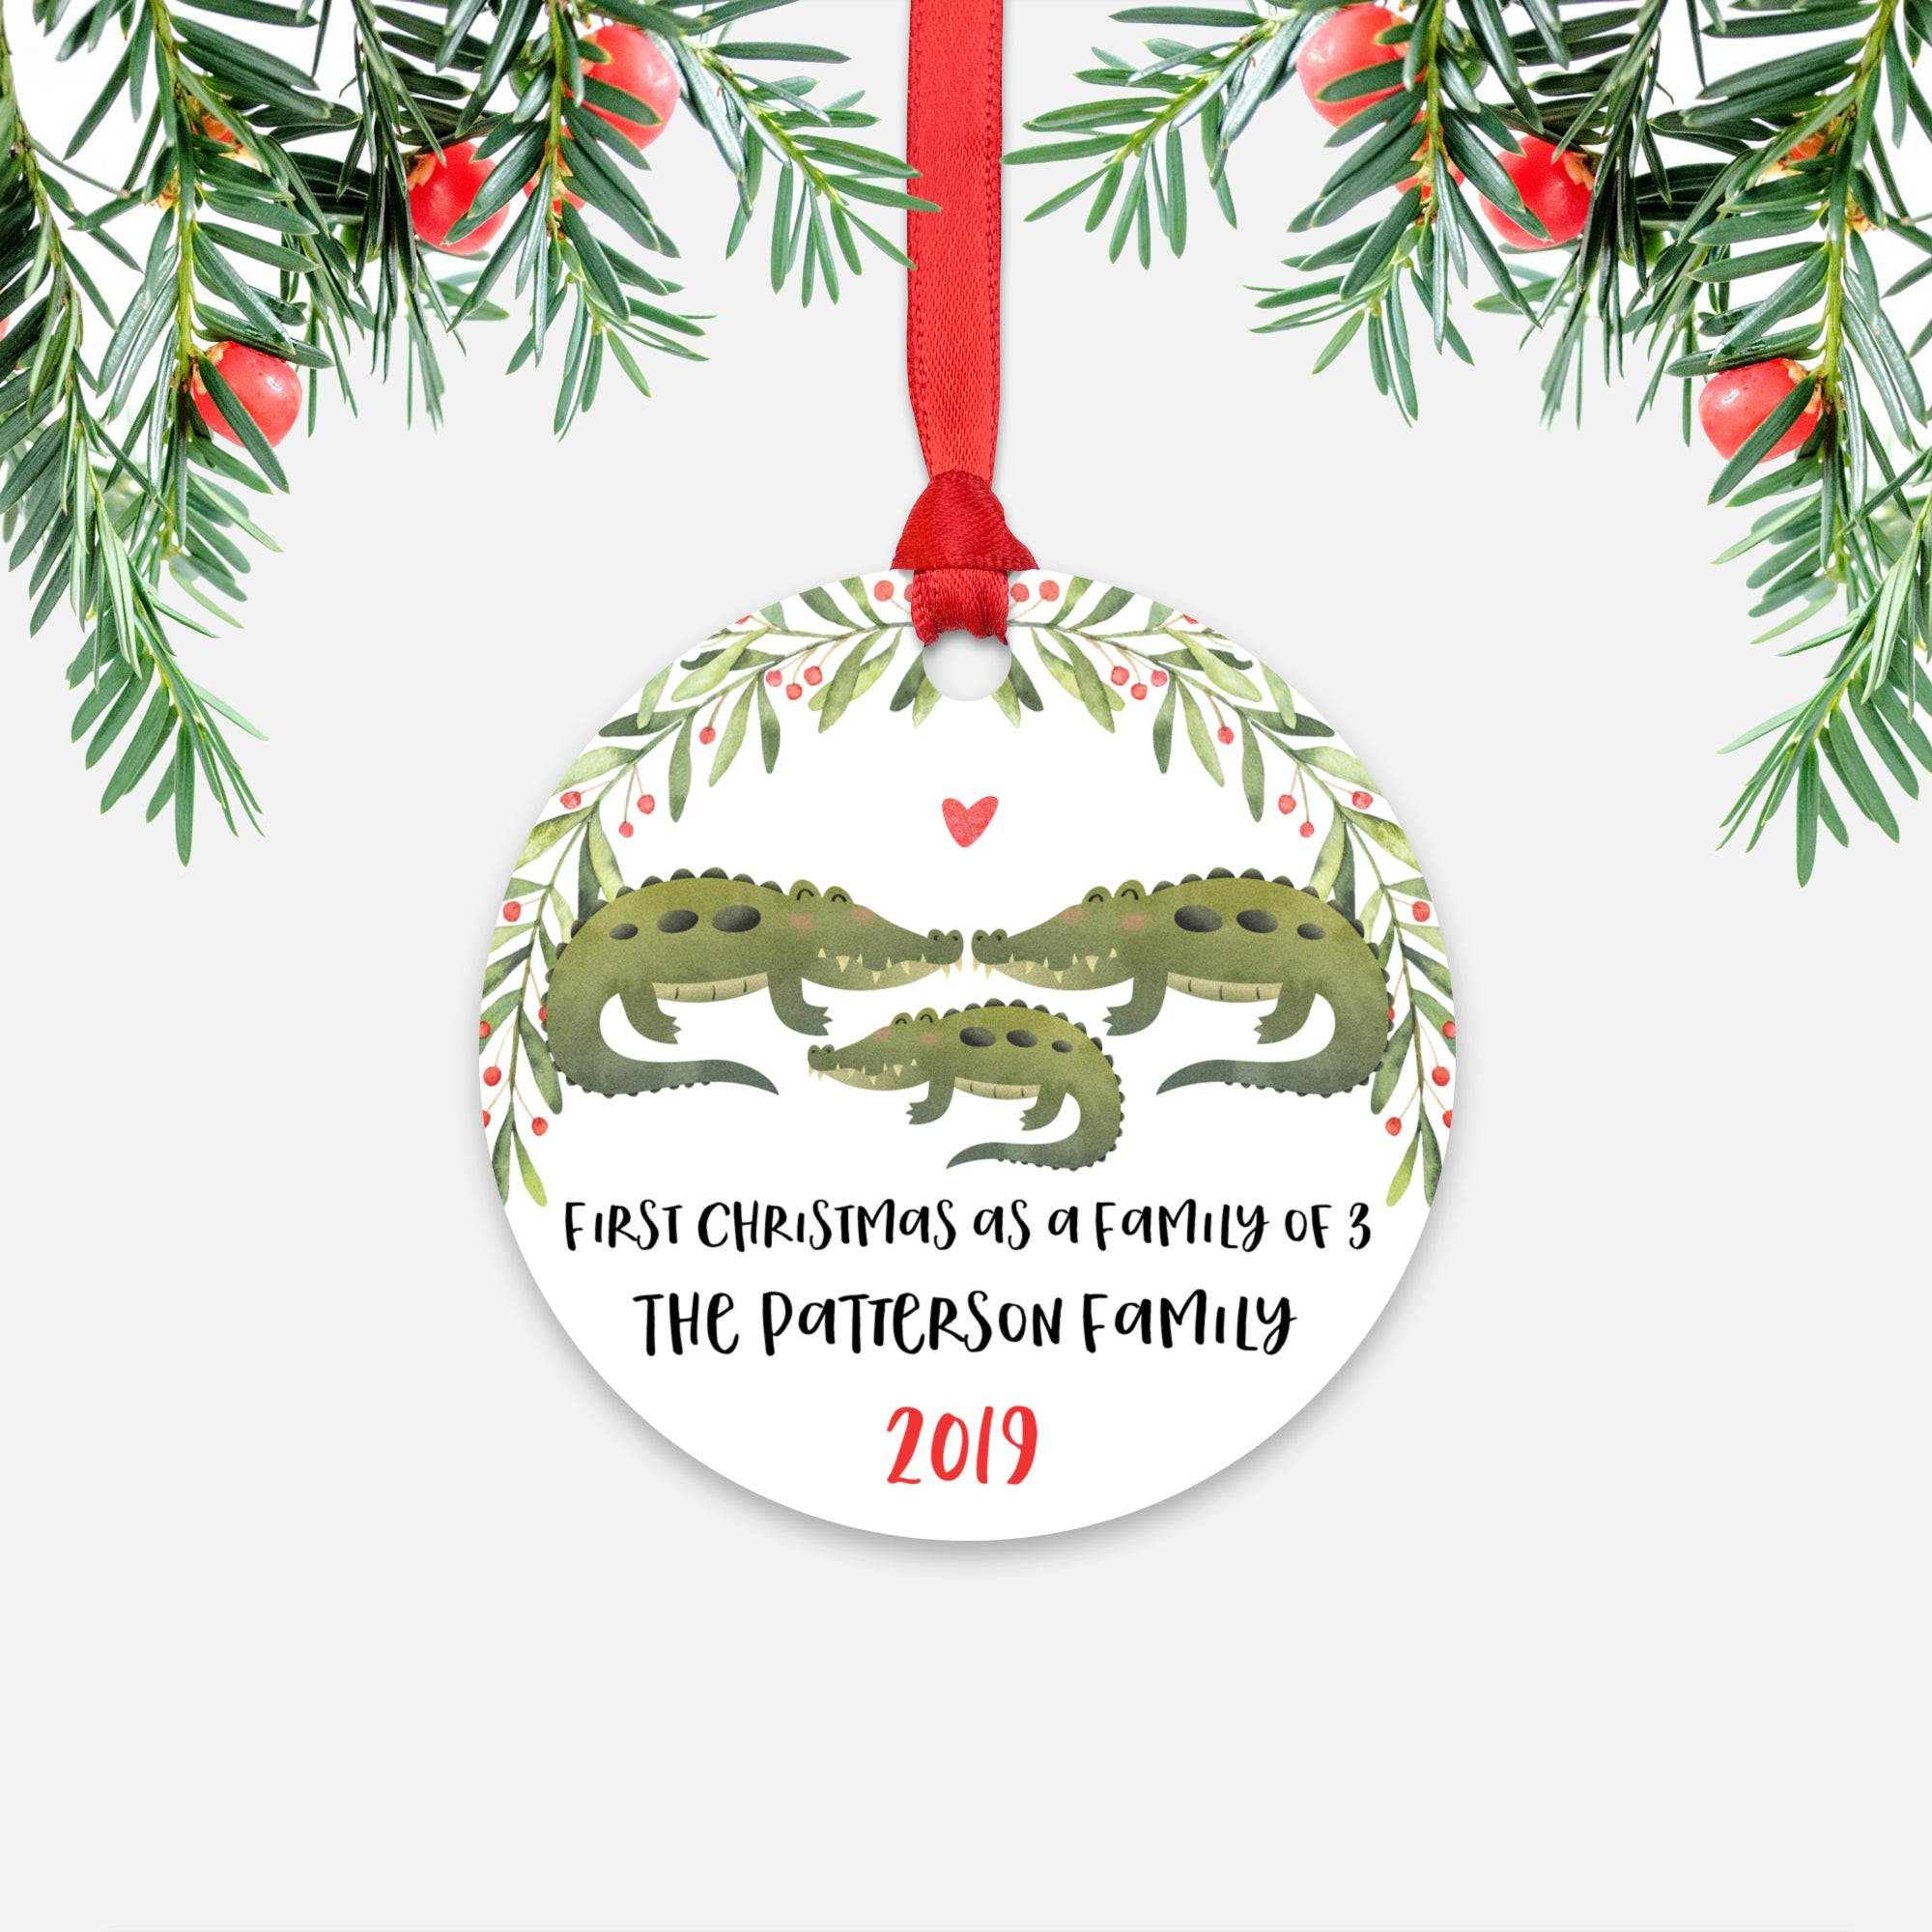 Alligator Crocodile First Christmas as a Family of 3 Three with Baby Boy Girl Personalized Ornament - Cute Animal Baby 1st Holidays Decoration - Custom Christmas Gift Idea for New Parents Mom Dad - Round Aluminum - by Happy Cat Prints